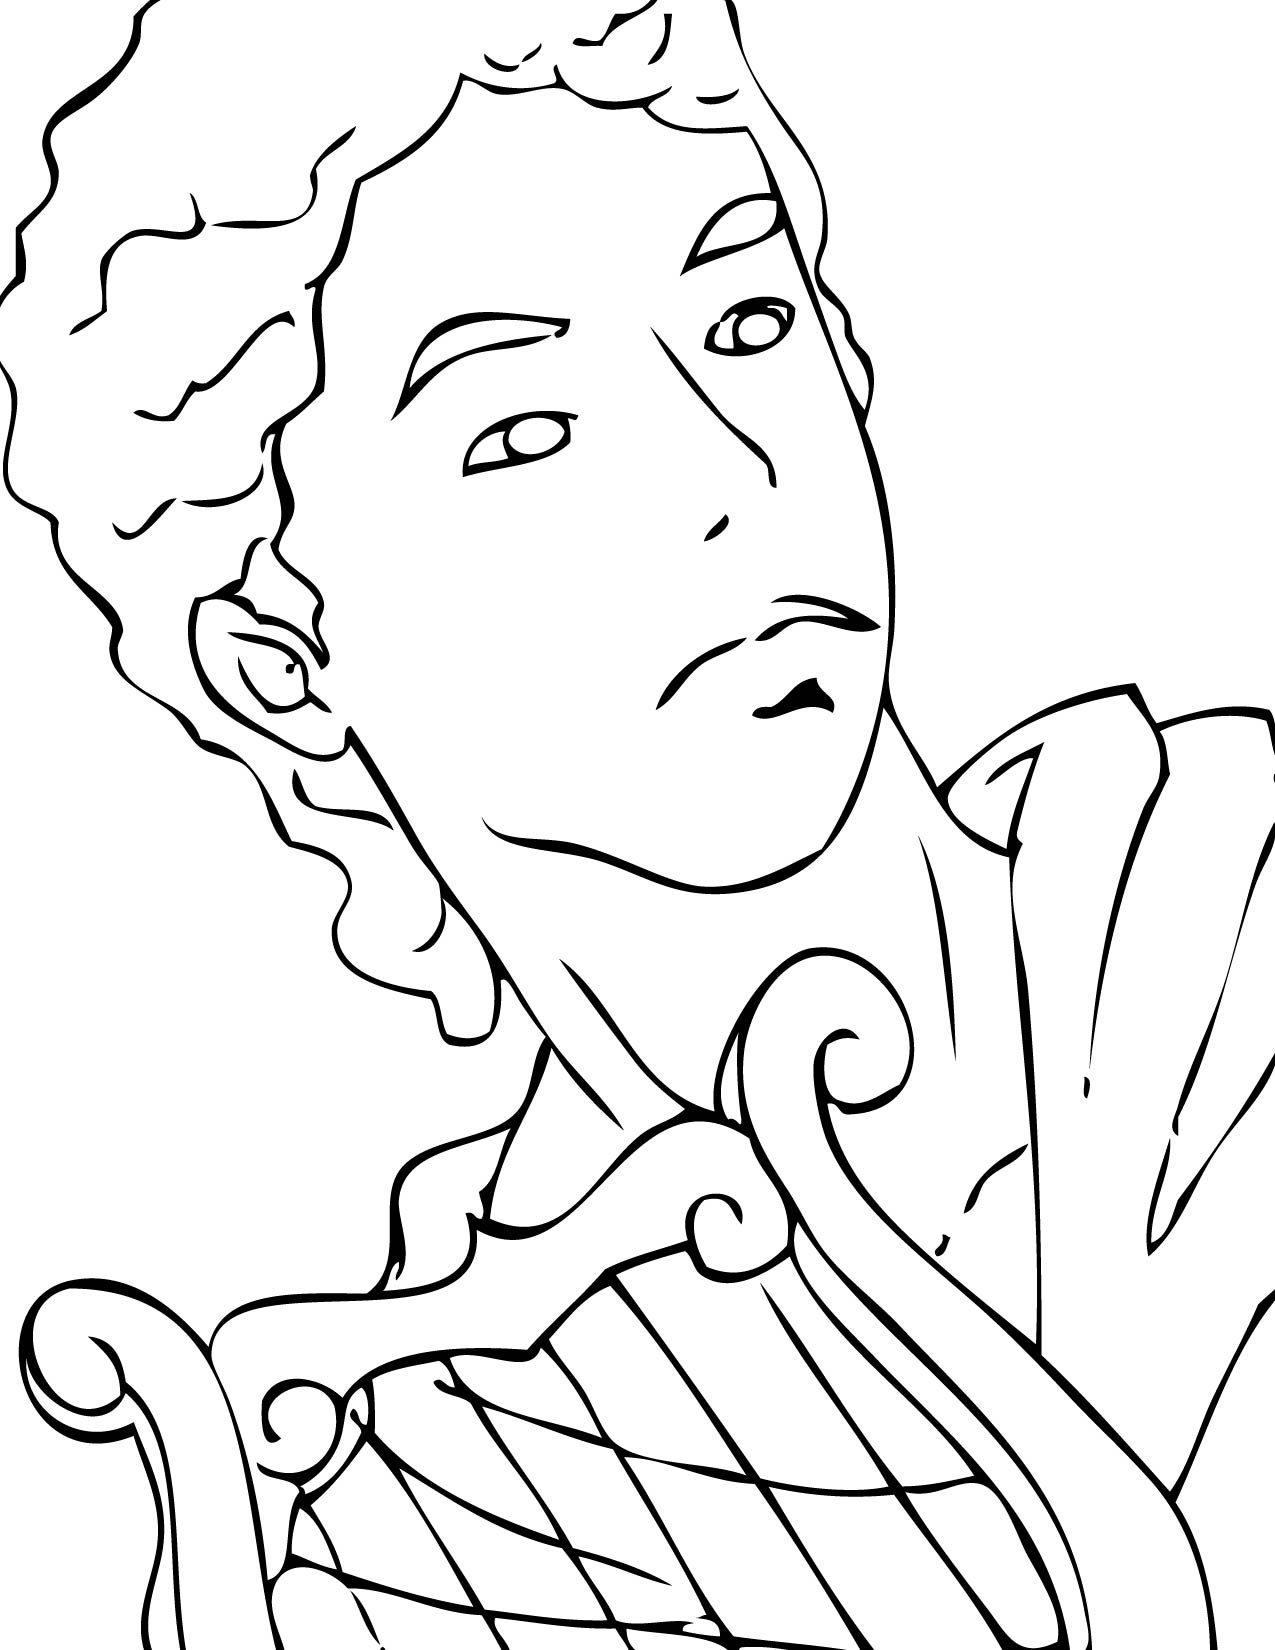 Coloring pages greek mythology - Print This Page Ancient Greek Gods Coloring Pages Coloring Pages